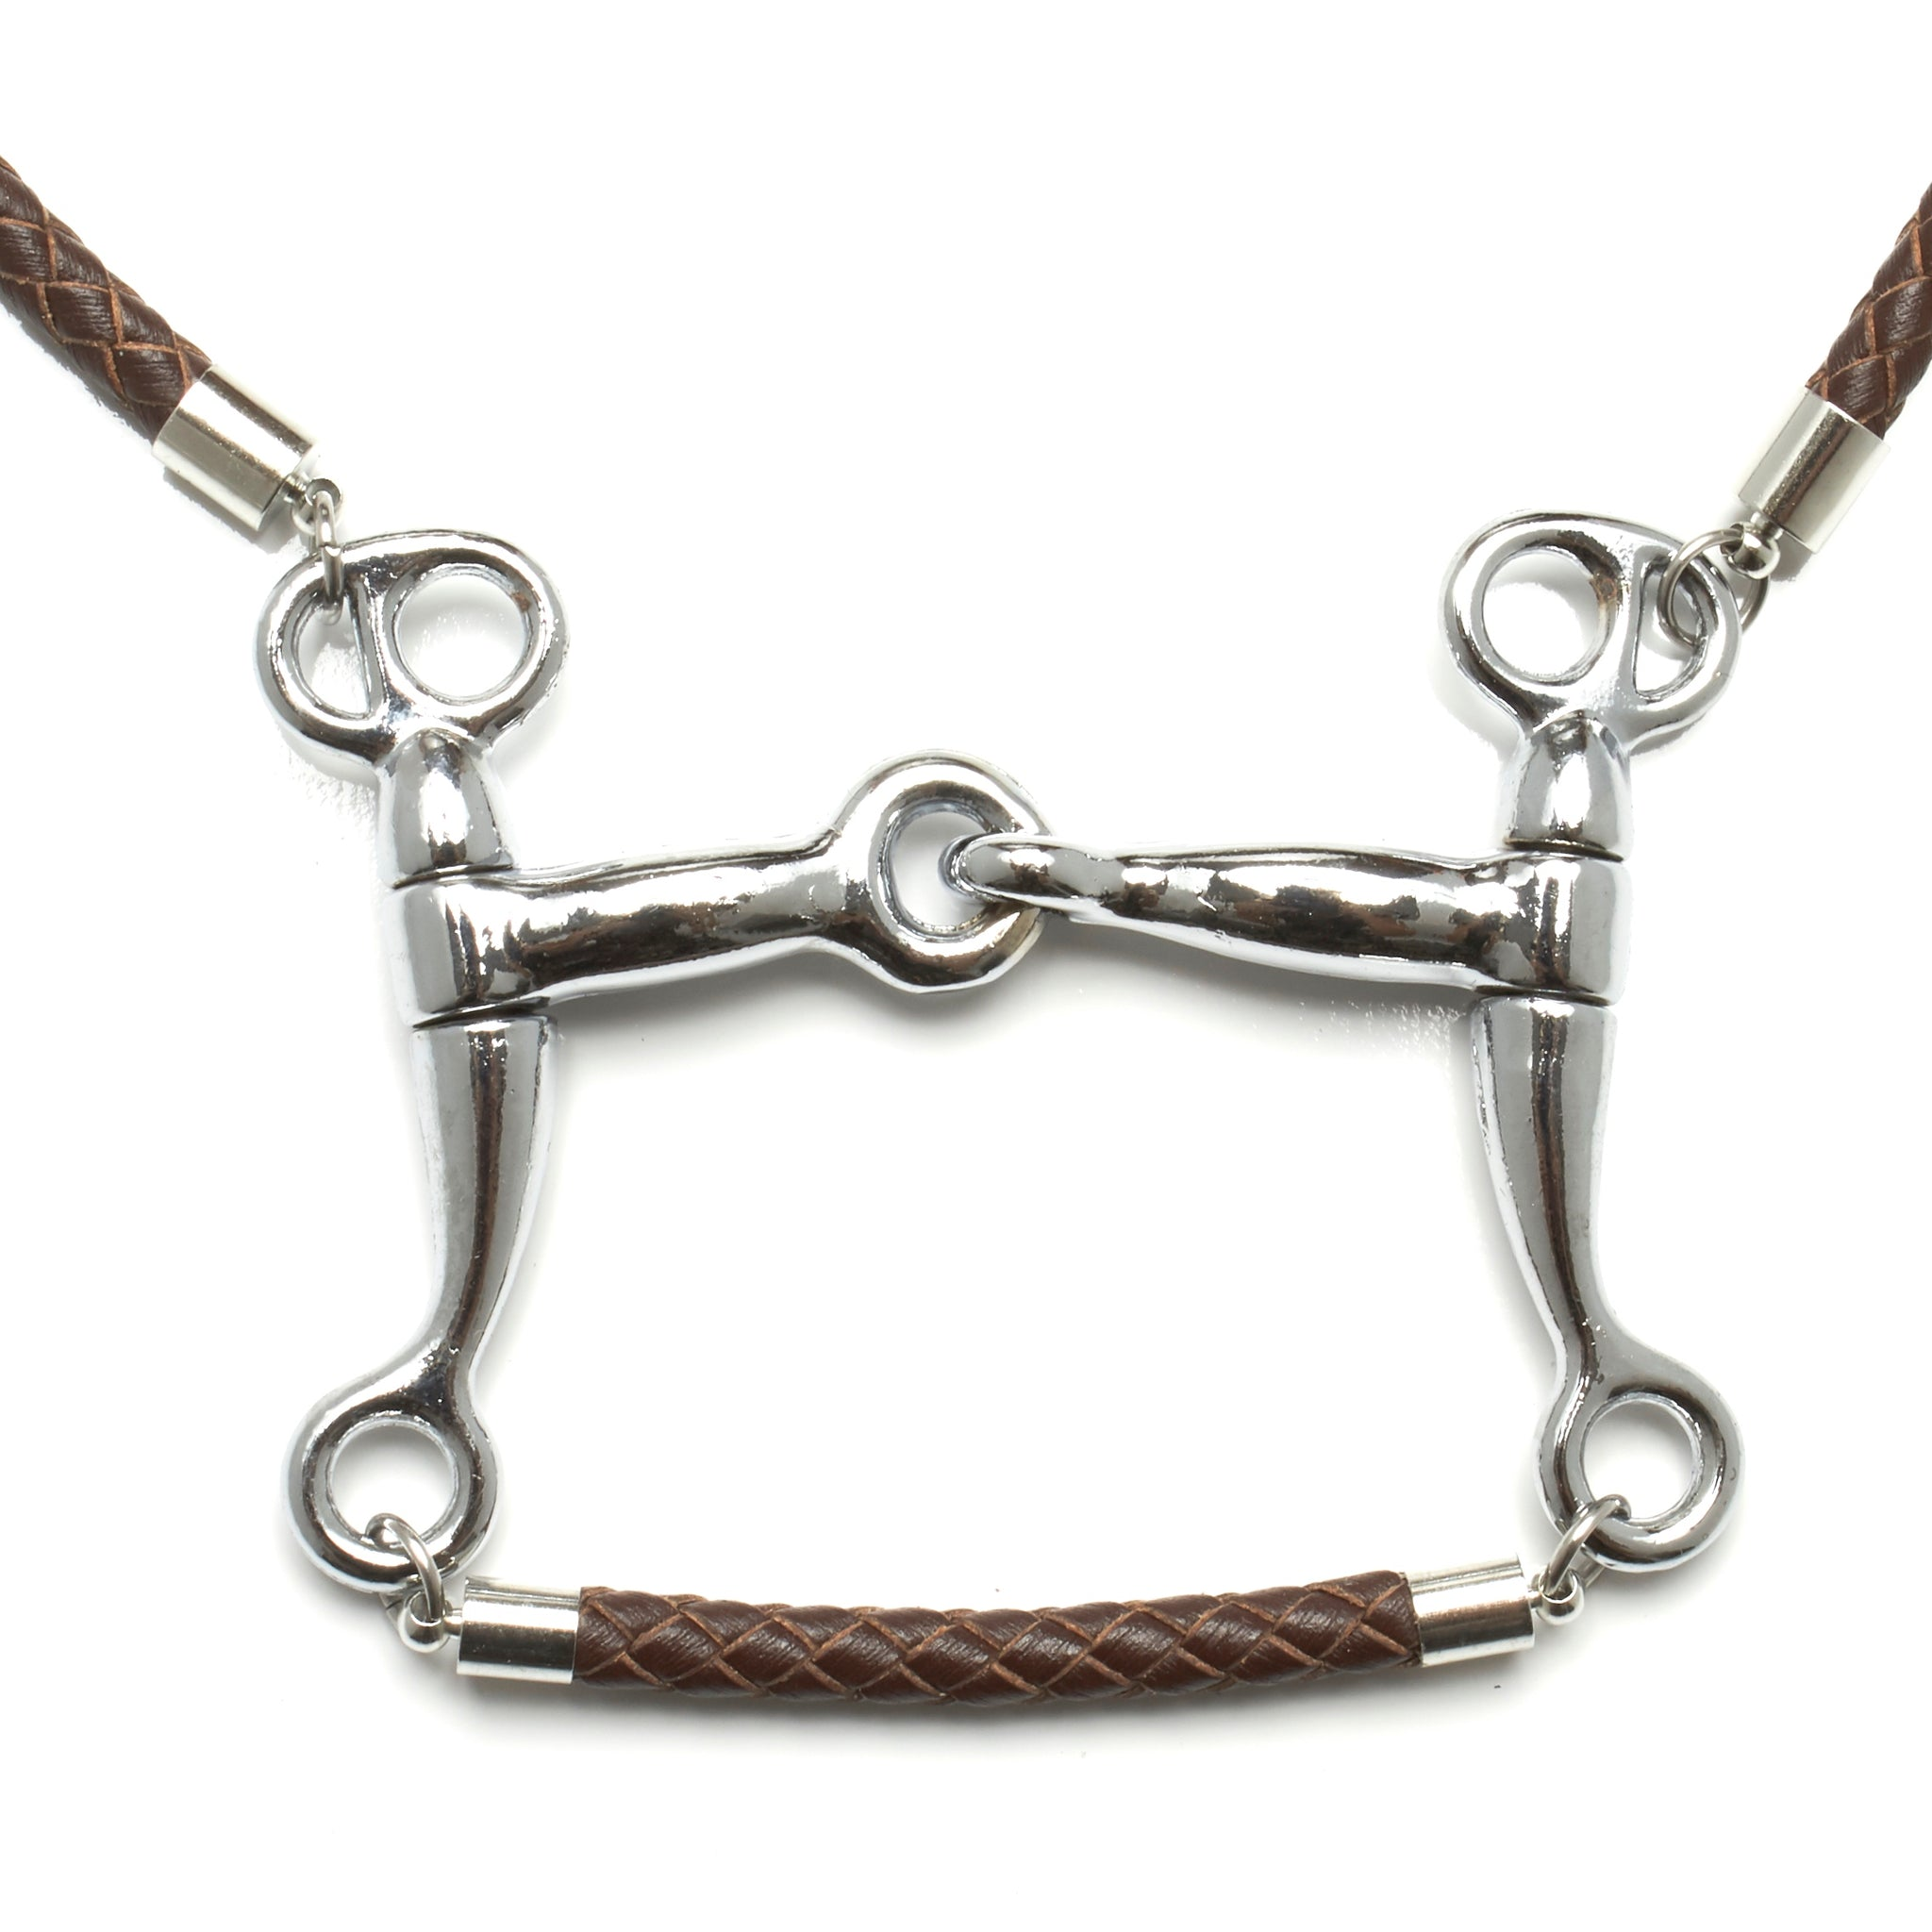 5 MM ROUND BRAIDED LEATHER NECKLACE WITH PELHAM HORSE BIT PENDANT AND LEATHER BAR by nyet jewelry